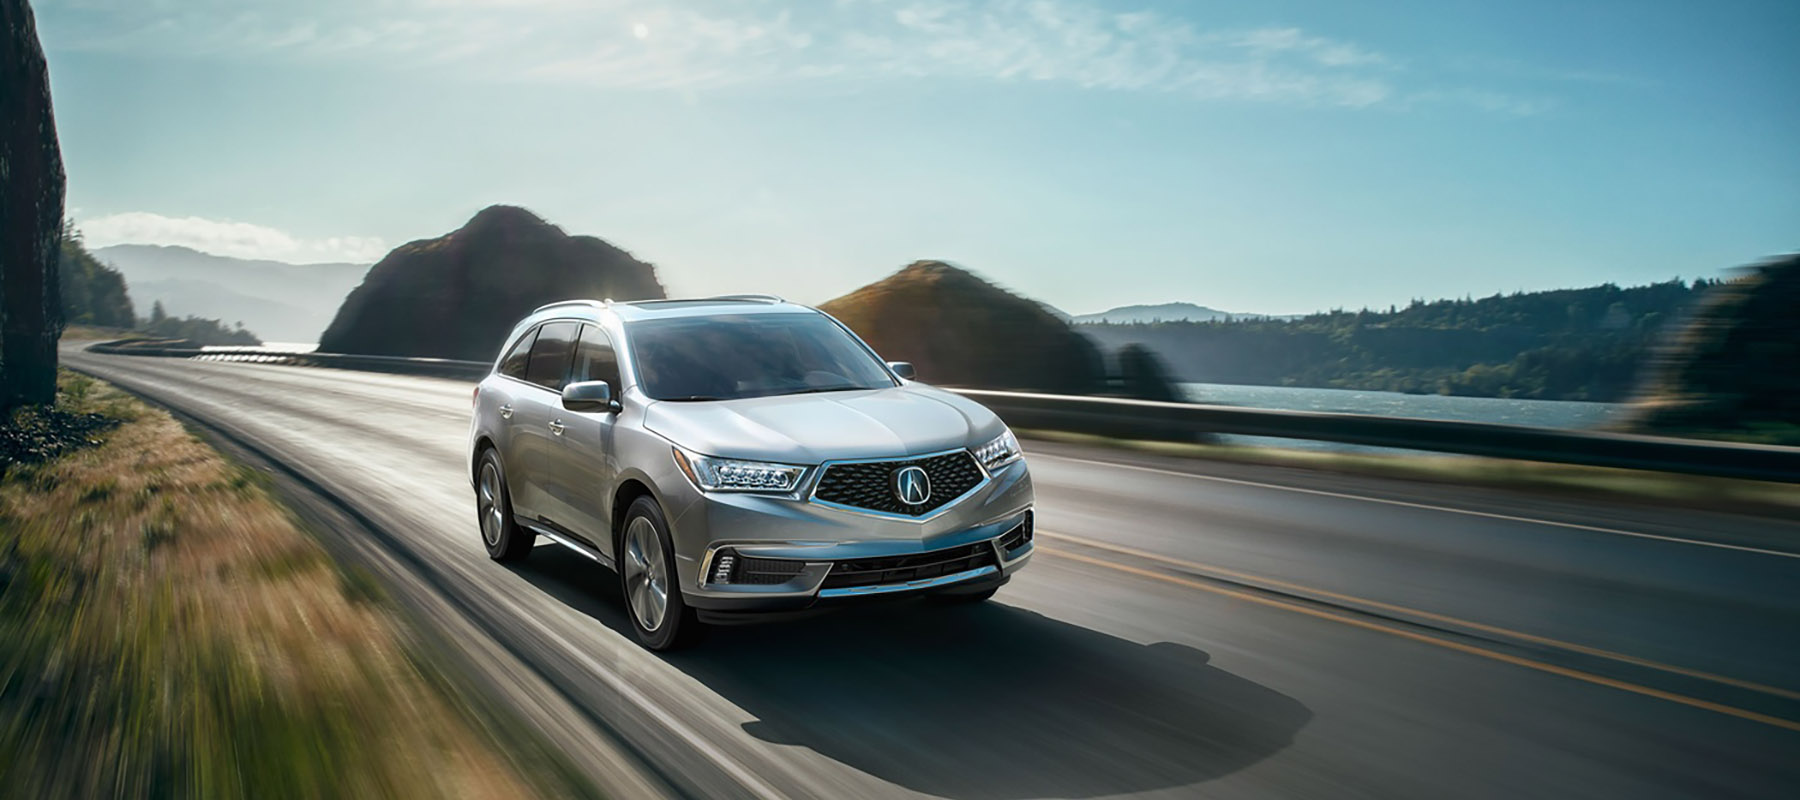 2017 Acura MDX Driving